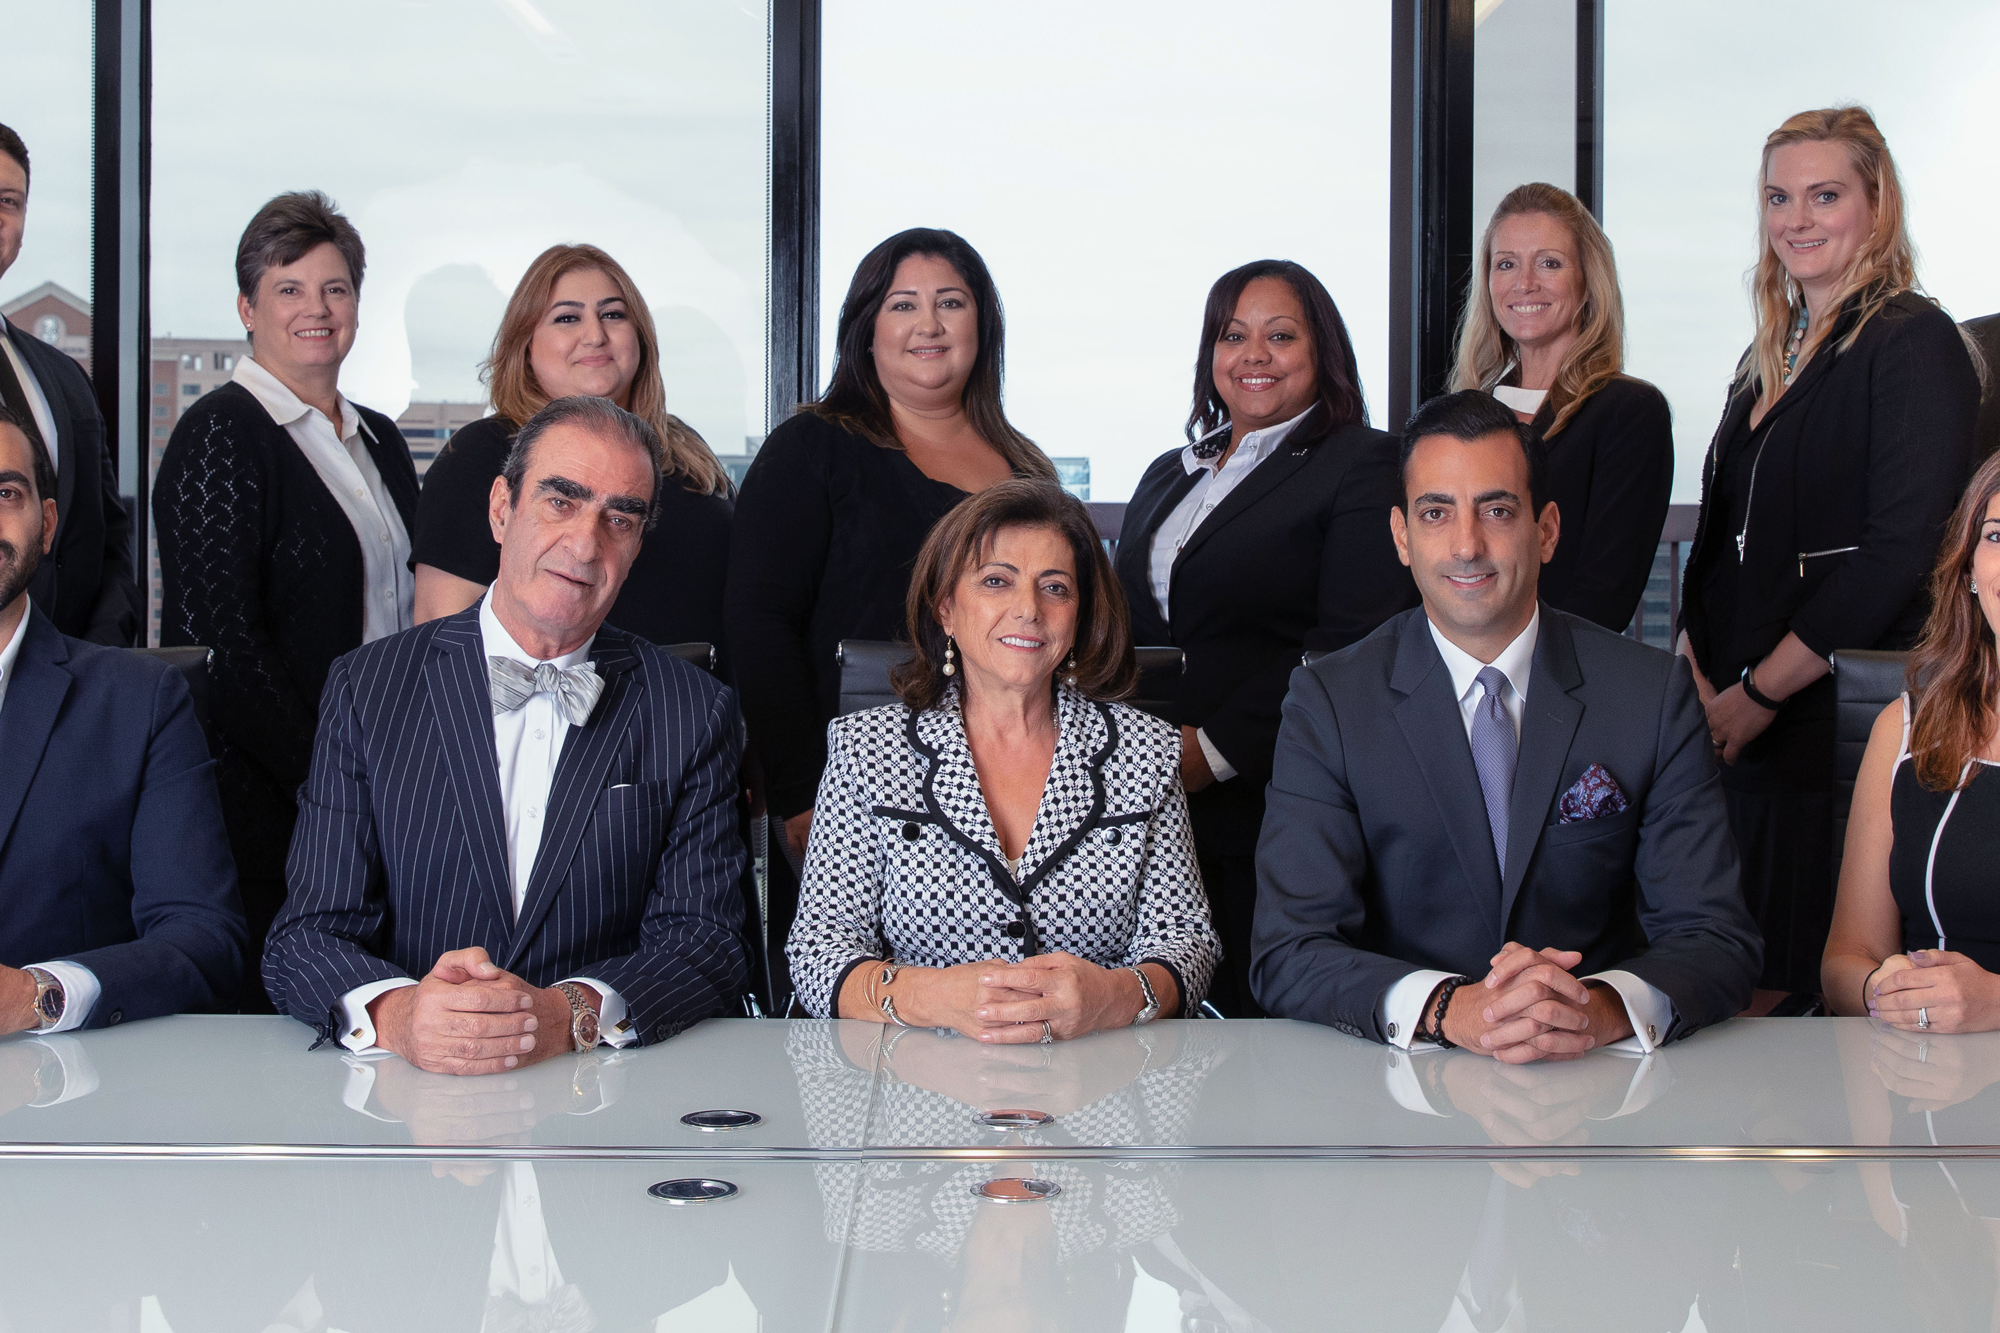 sahouri-insurance-executive-leadership-team